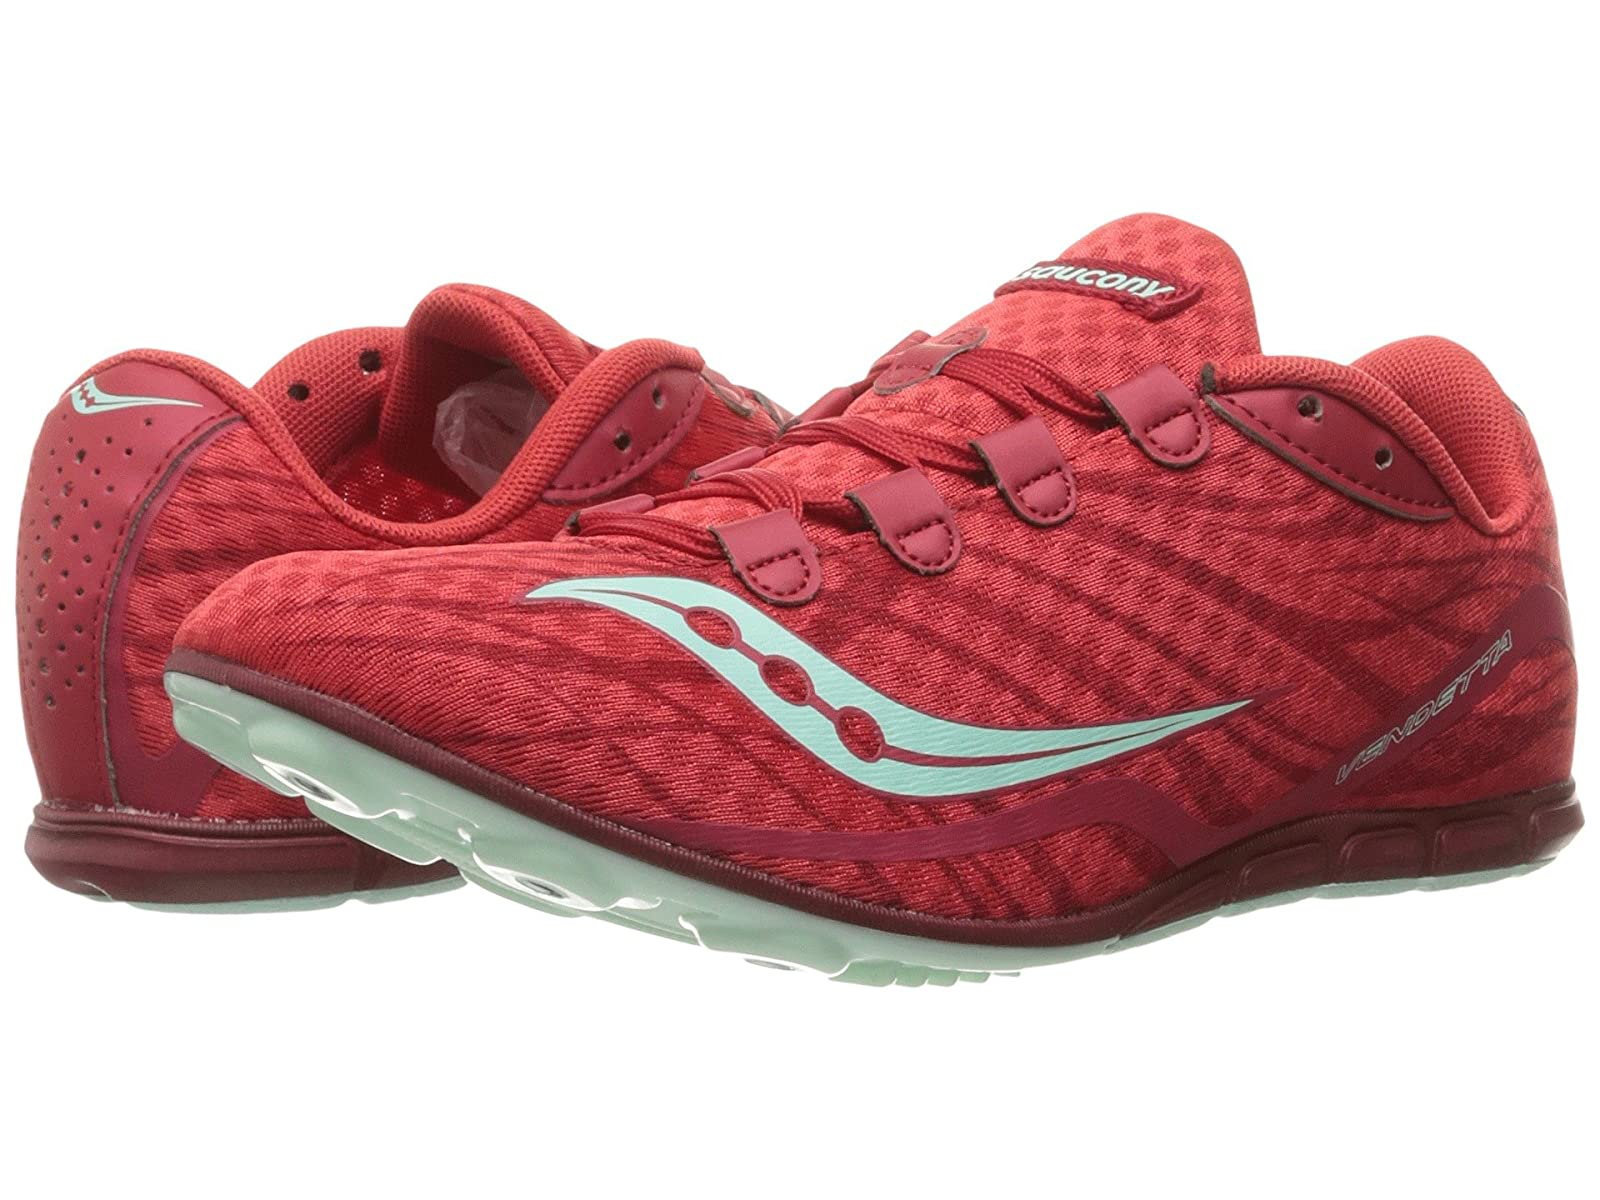 Saucony VendettaCheap and distinctive eye-catching shoes